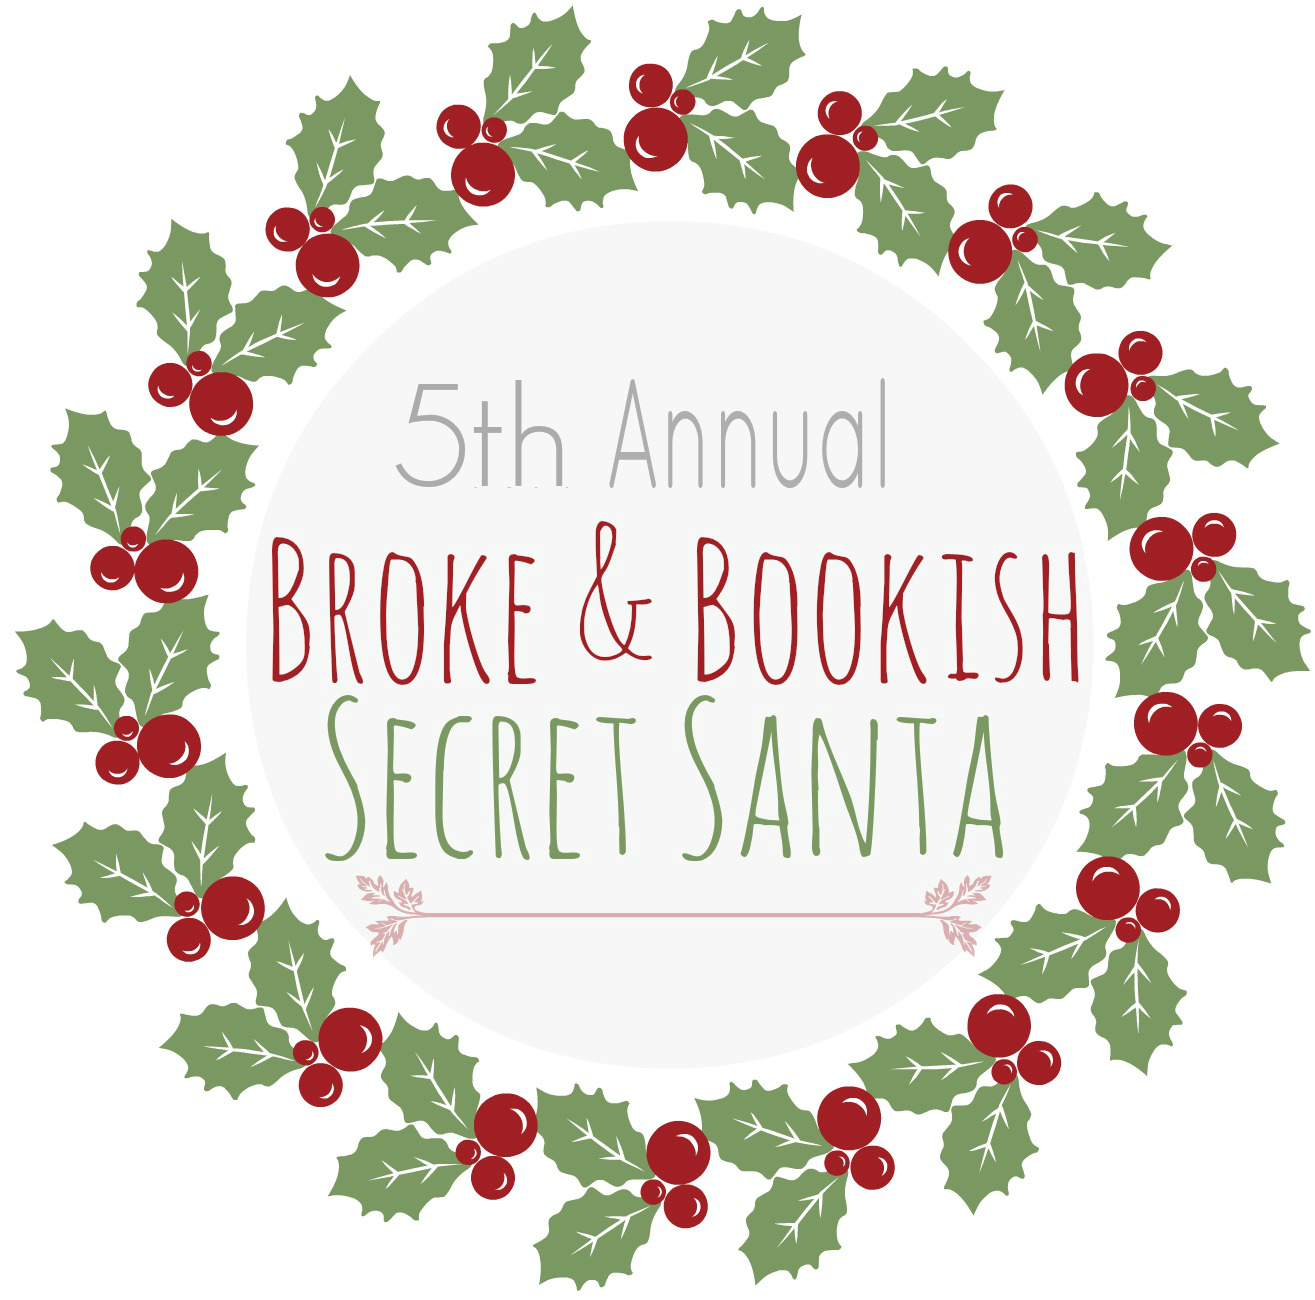 http://www.brokeandbookish.com/2014/11/5th-annual-secret-santa-sign-ups.html